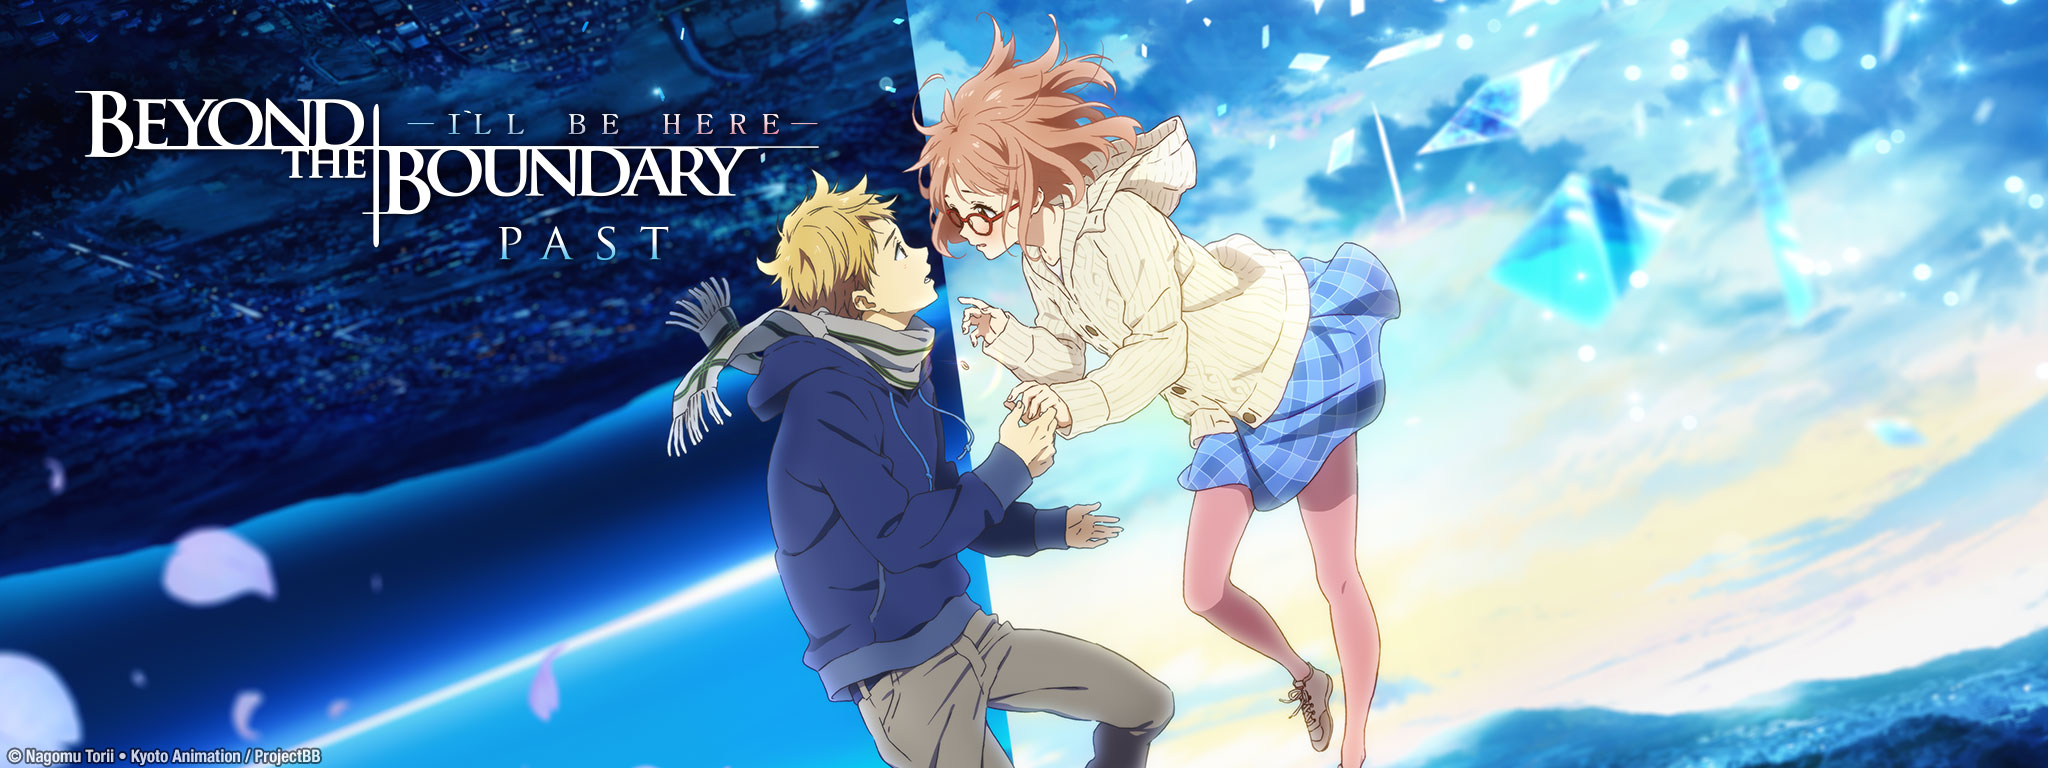 Beyond the Boundary -I'LL BE HERE-: Past